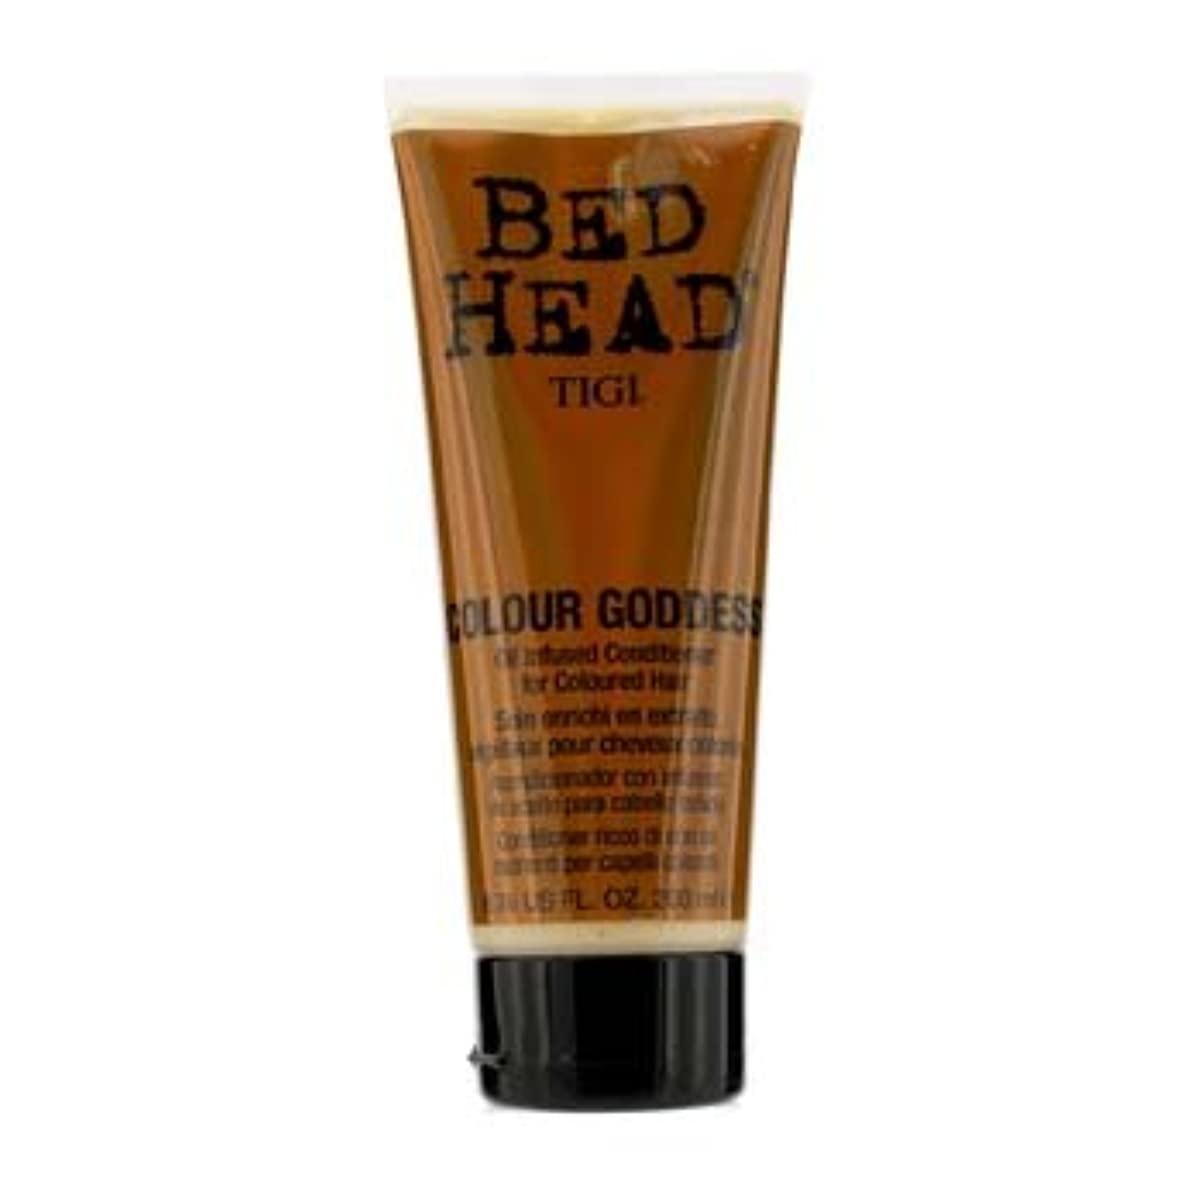 深く壁自動的に[Tigi] Bed Head Colour Goddess Oil Infused Conditioner (For Coloured Hair) 200ml/6.76oz